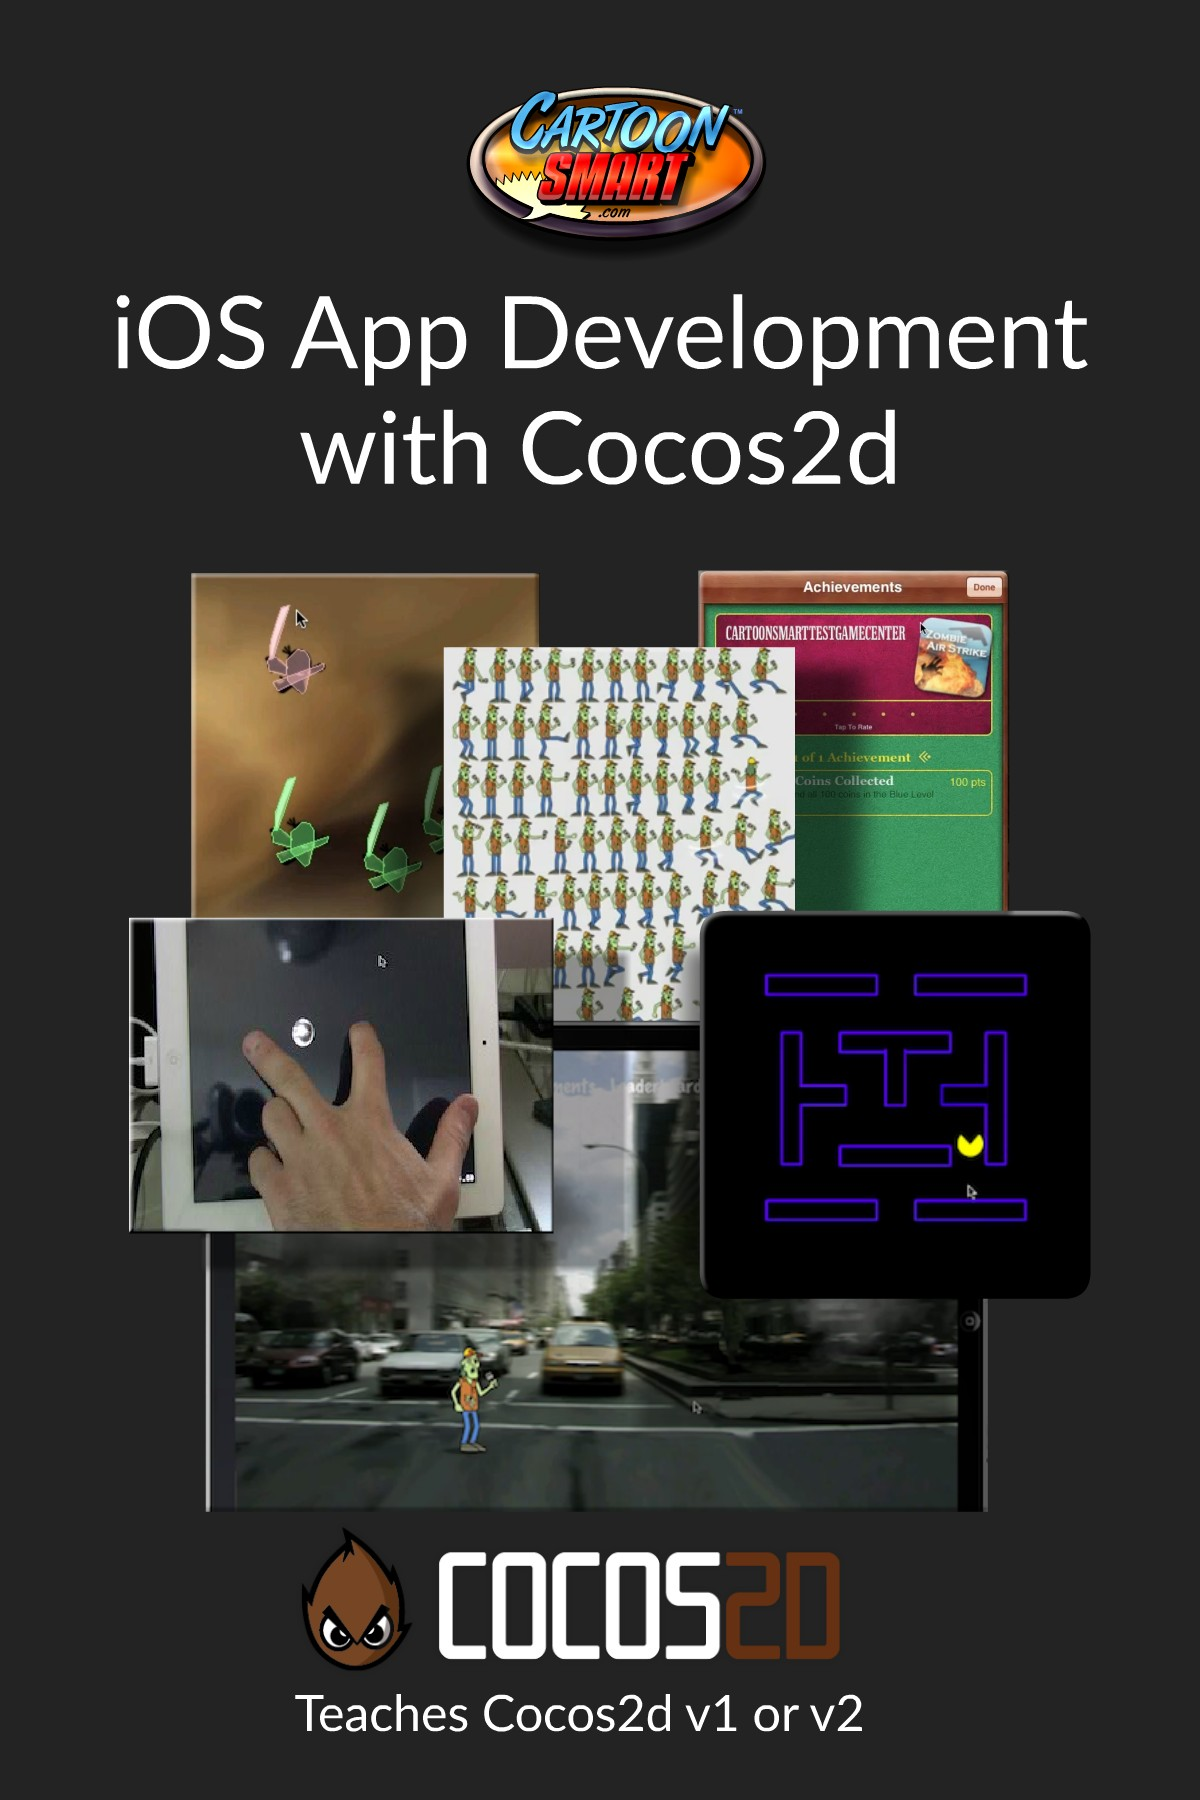 Added our Cocos2d tutorials / book to the Subscription Portal